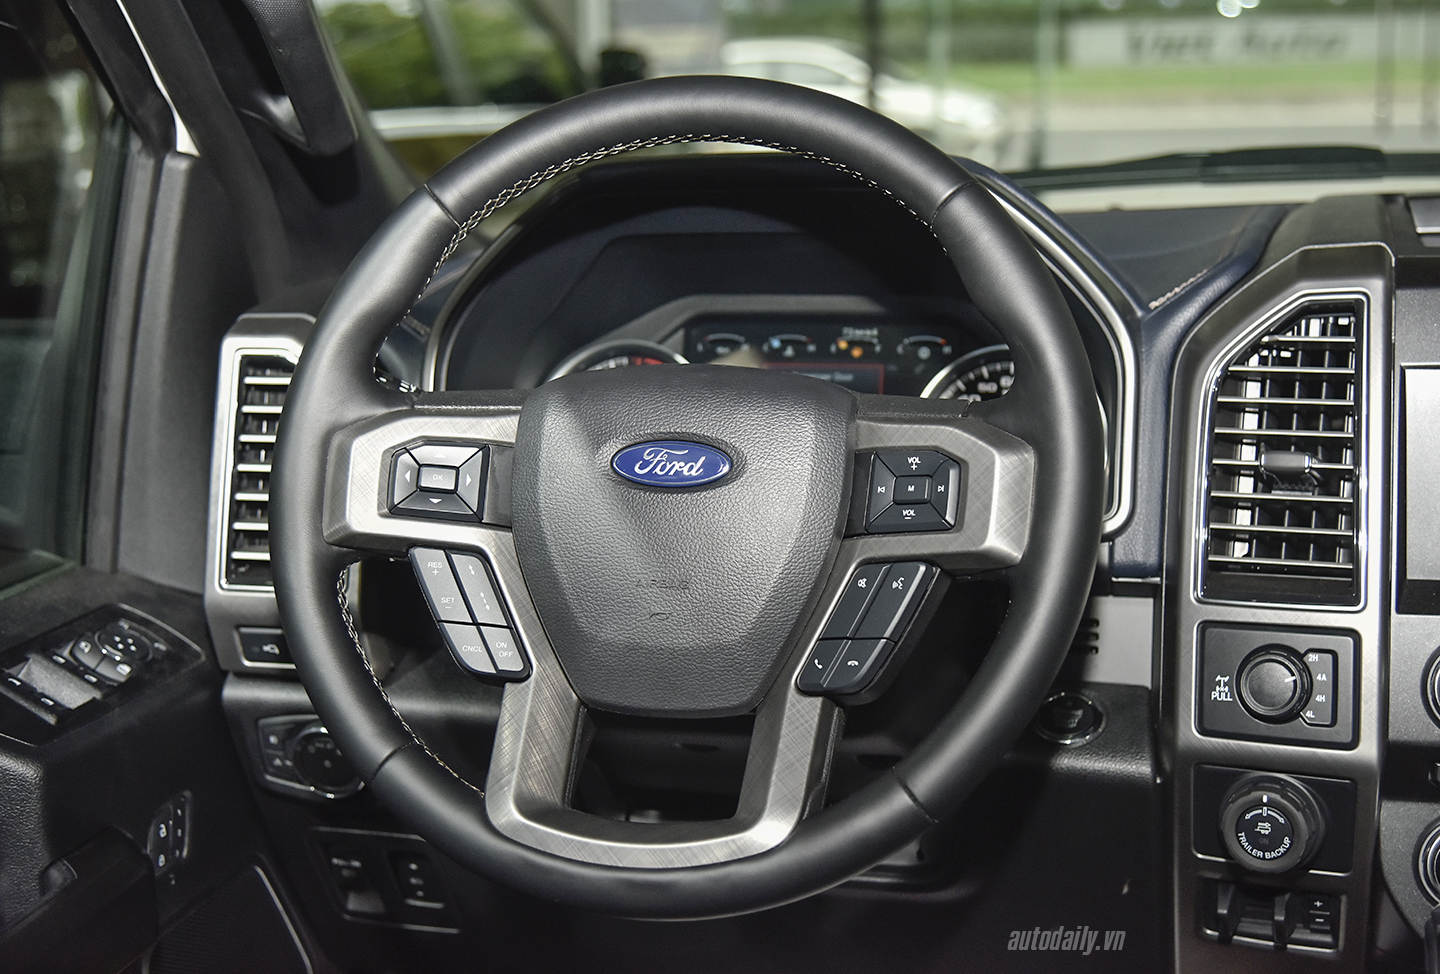 ford-f-150-limited-2018-dsc7158-copy.jpg